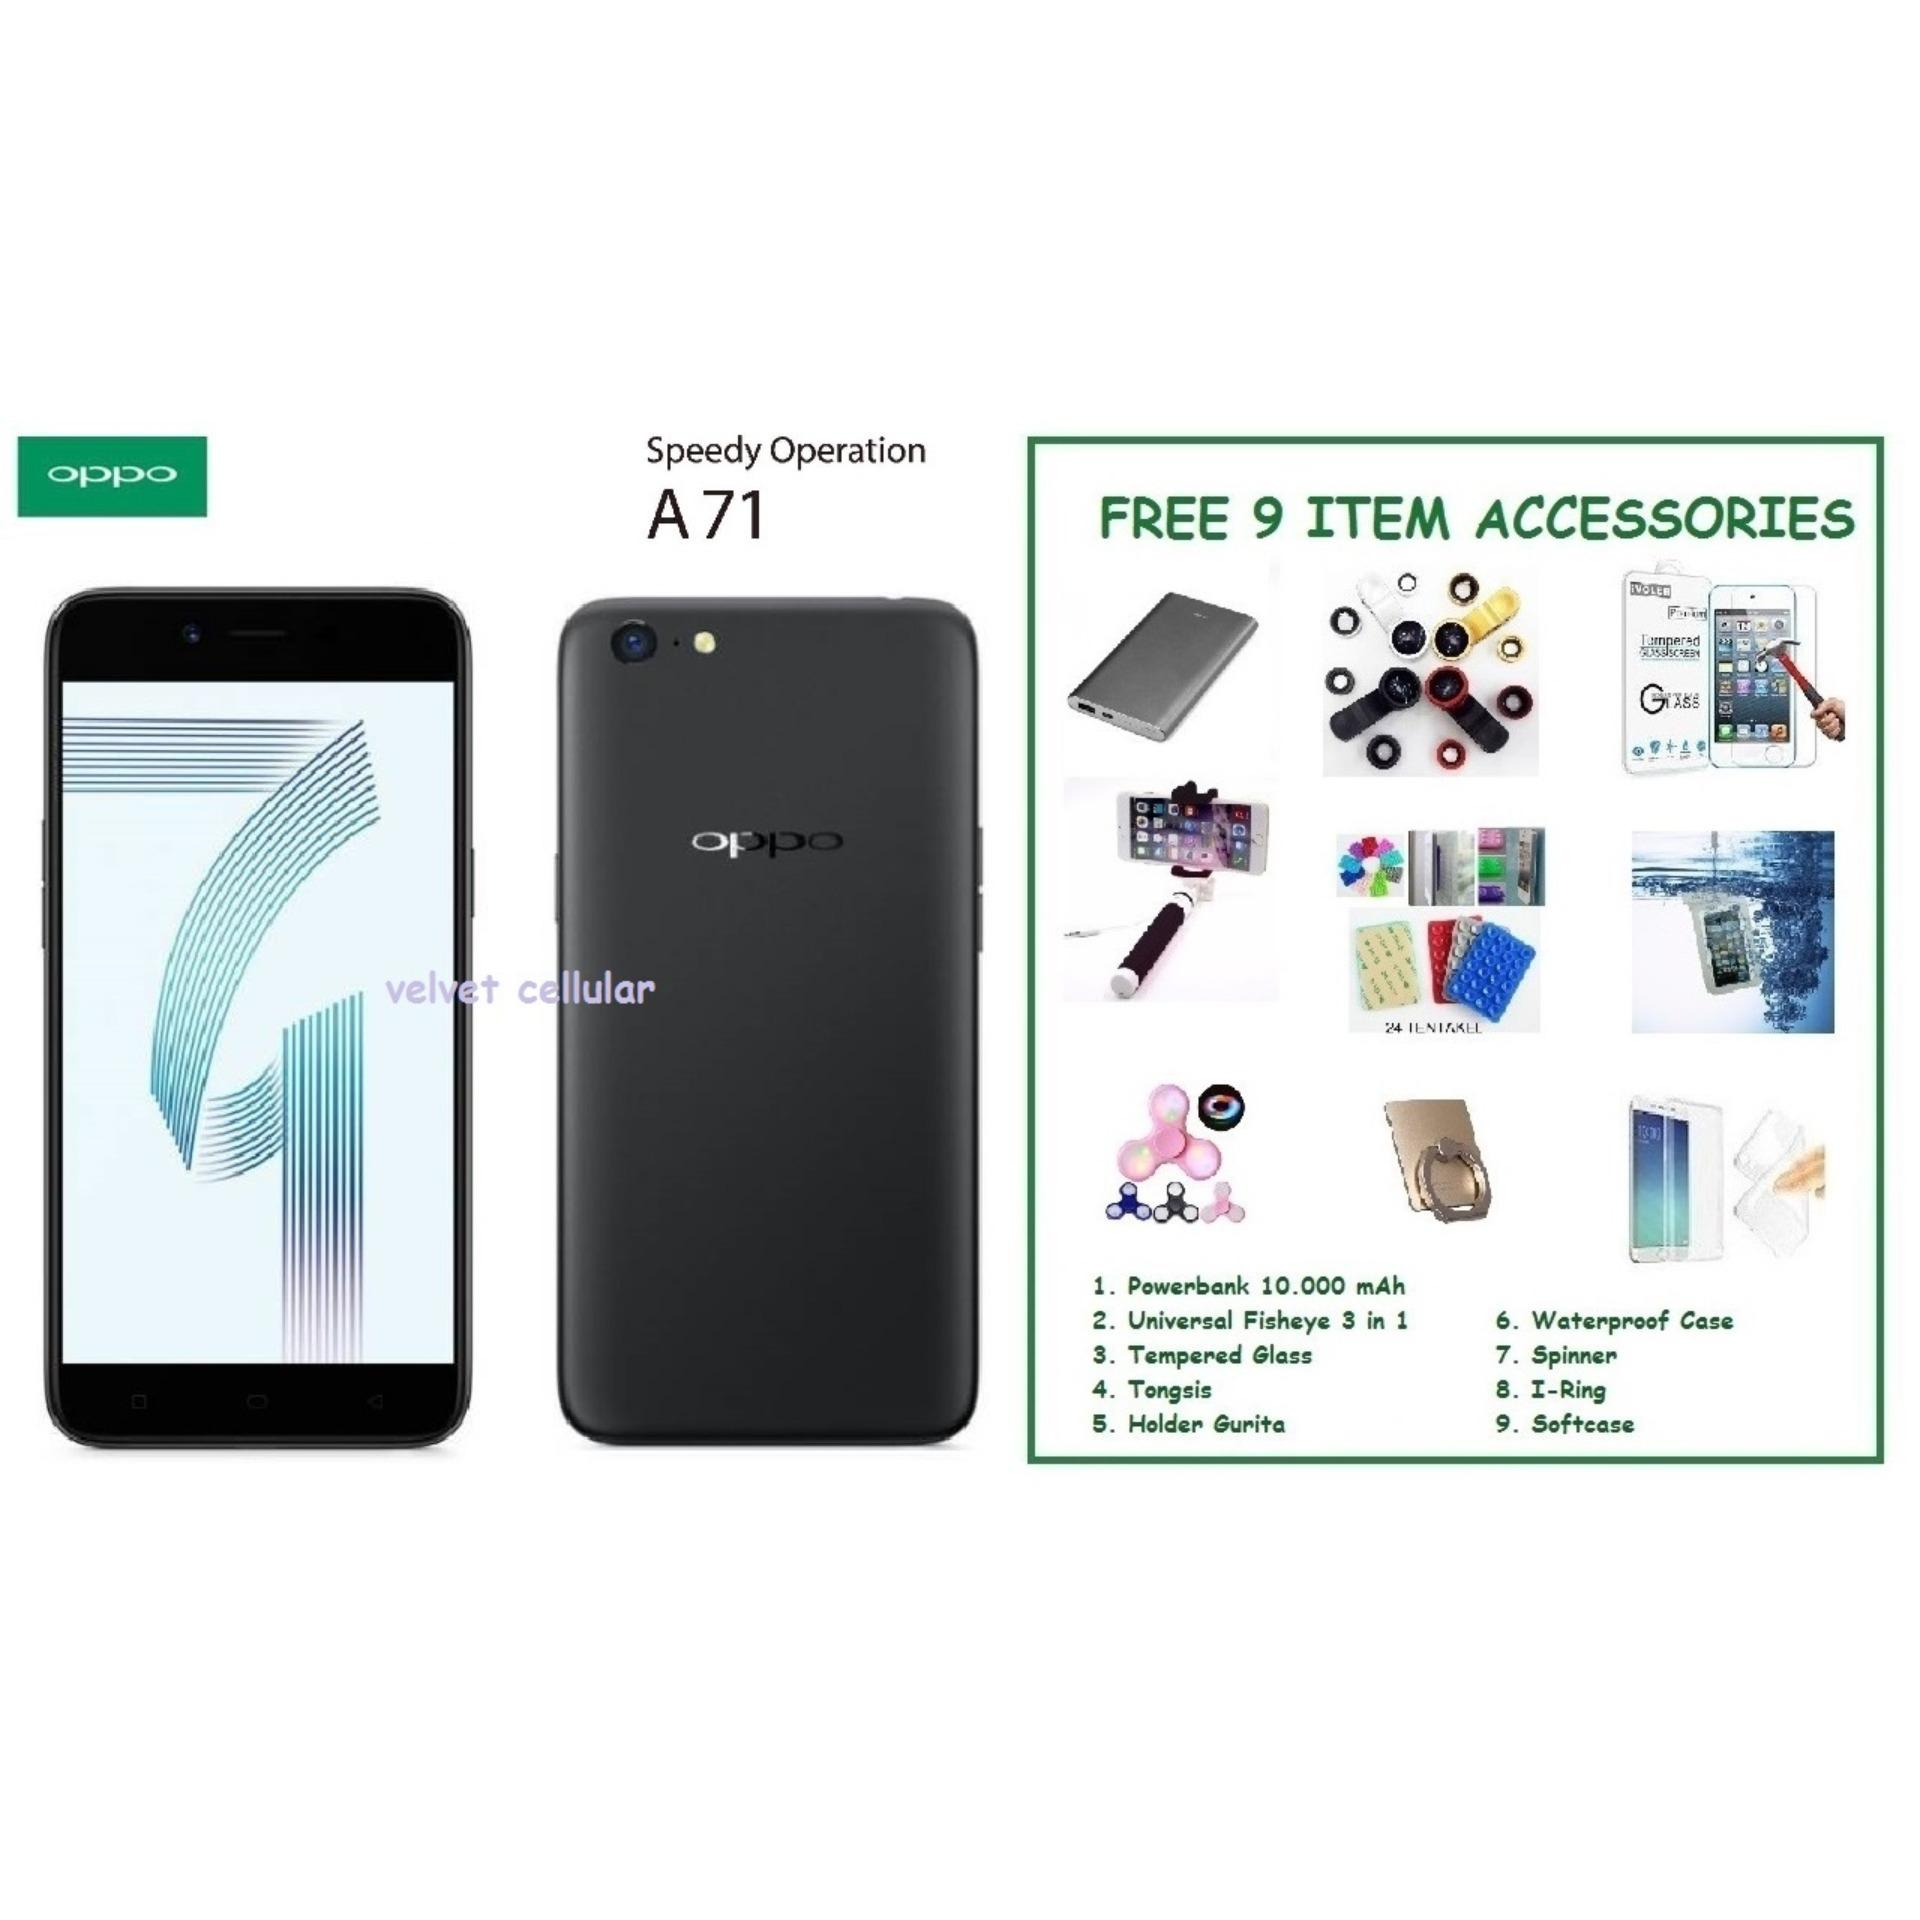 ... OPPO A71 [2/16GB] + FREE 9 ITEM ACCESSORIES